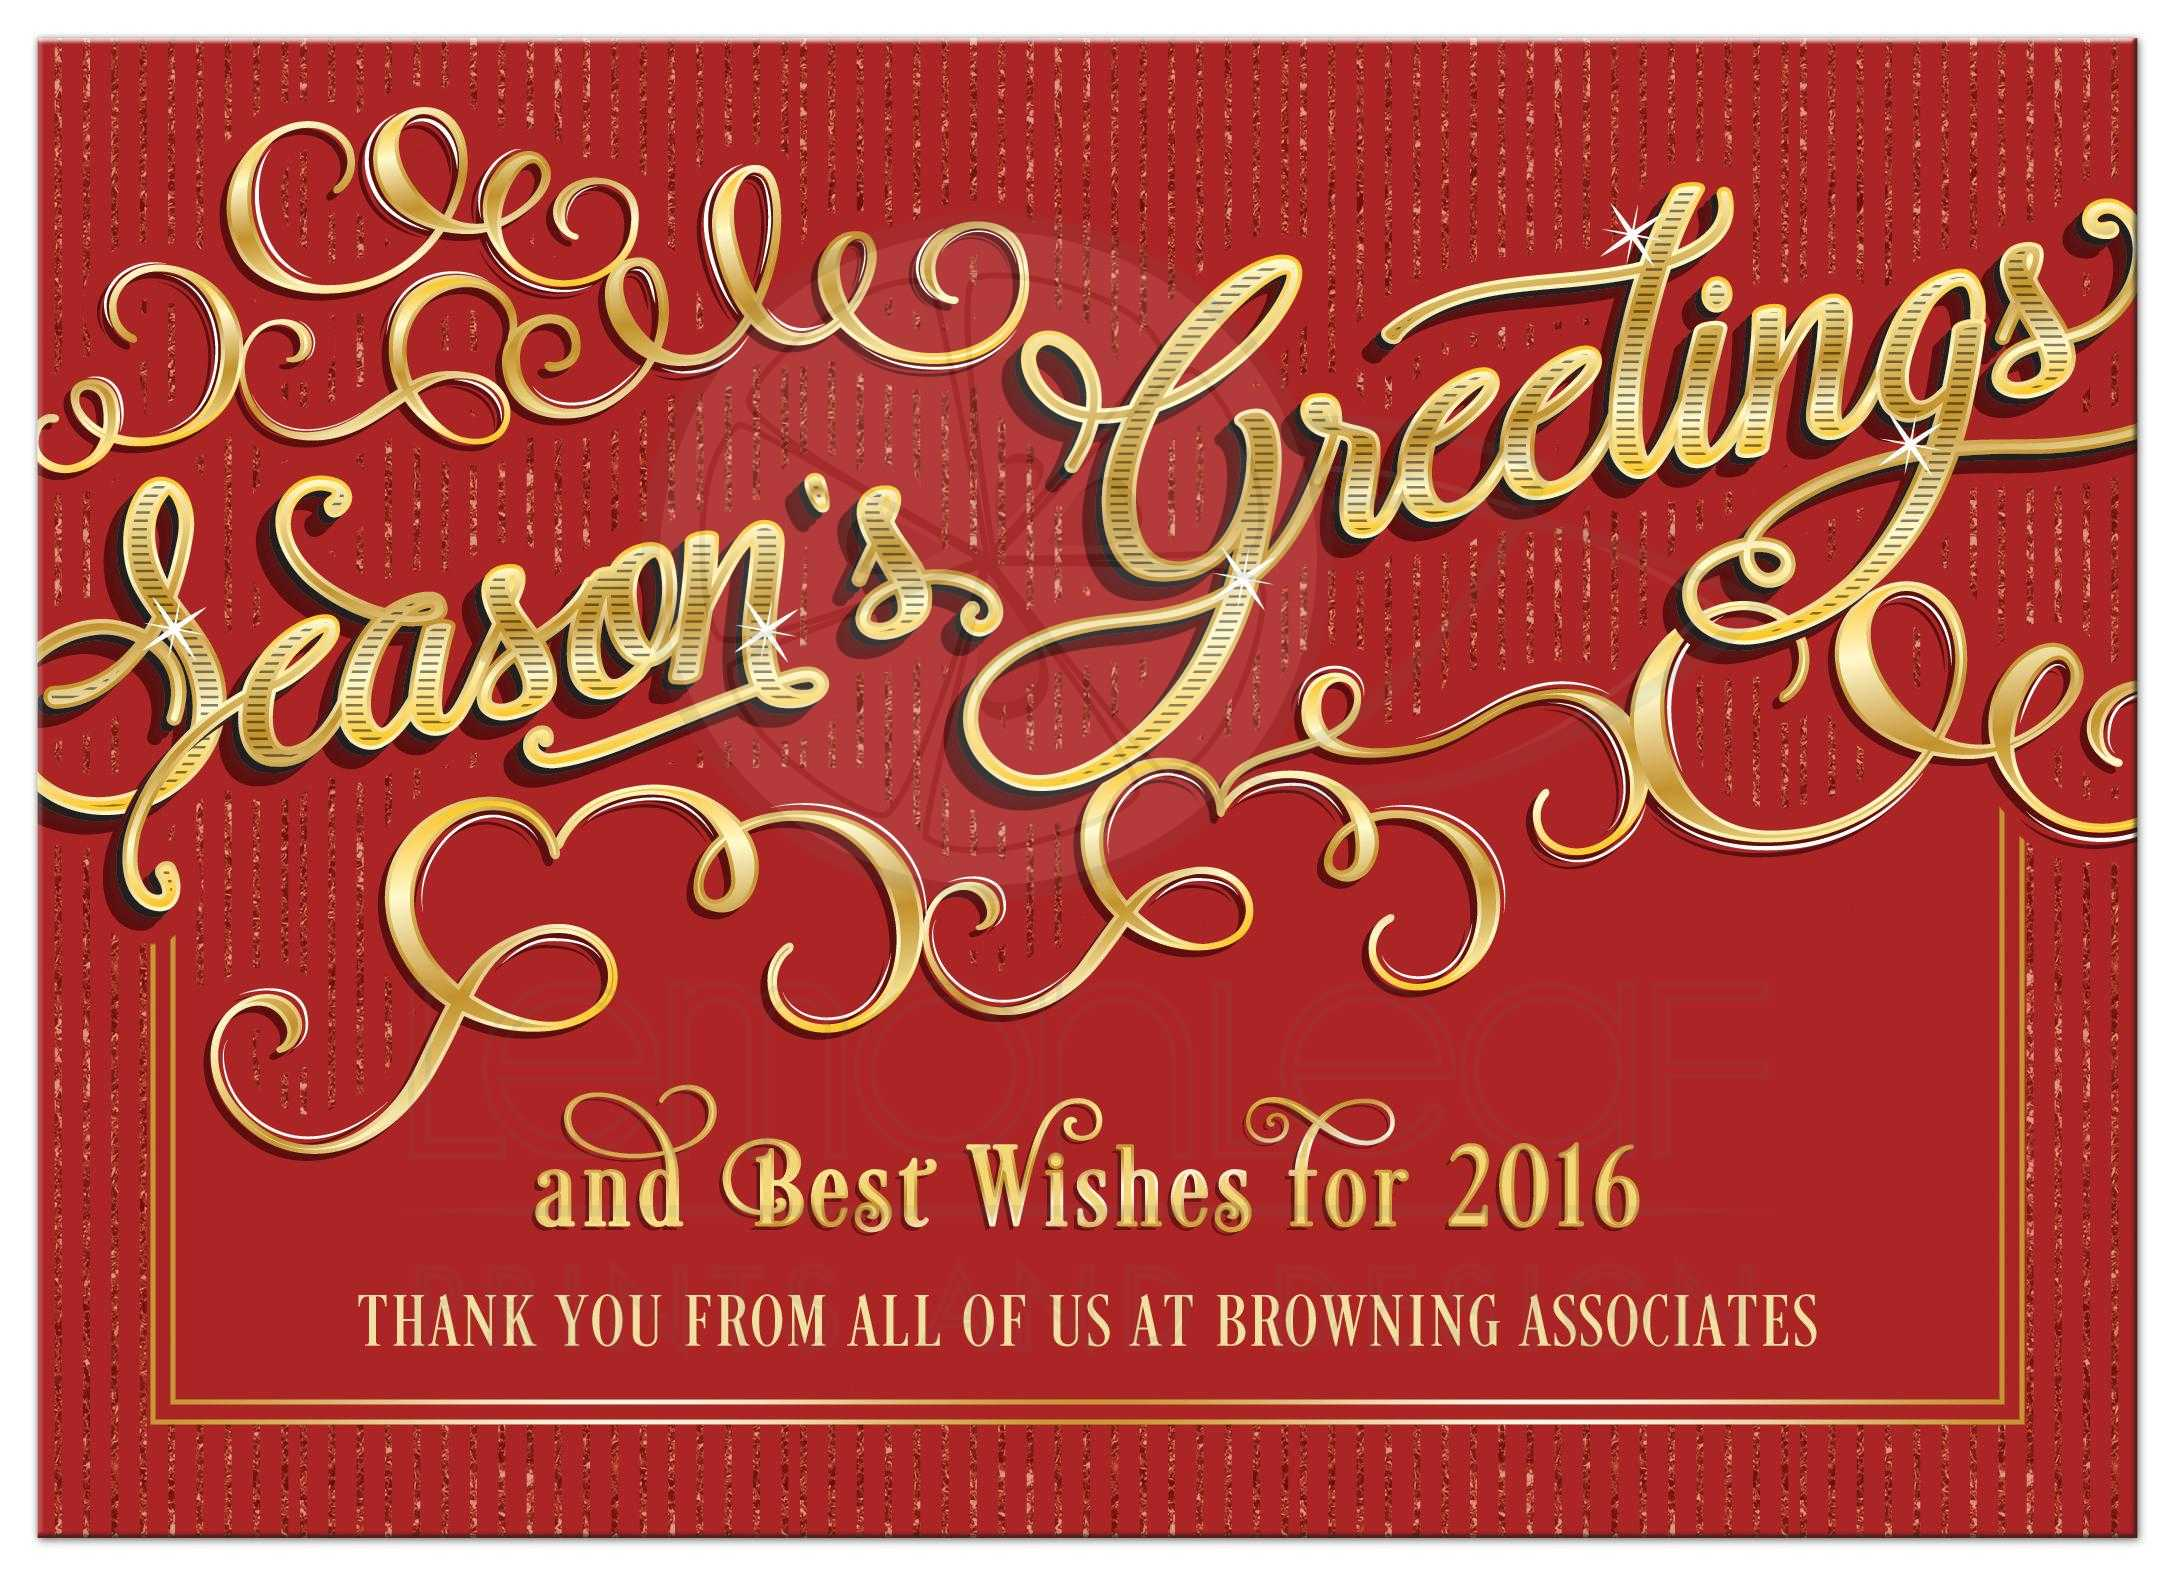 Business holiday card elegant seasons greetings red gold elegant red and gold seasons greetings business holiday greeting card m4hsunfo